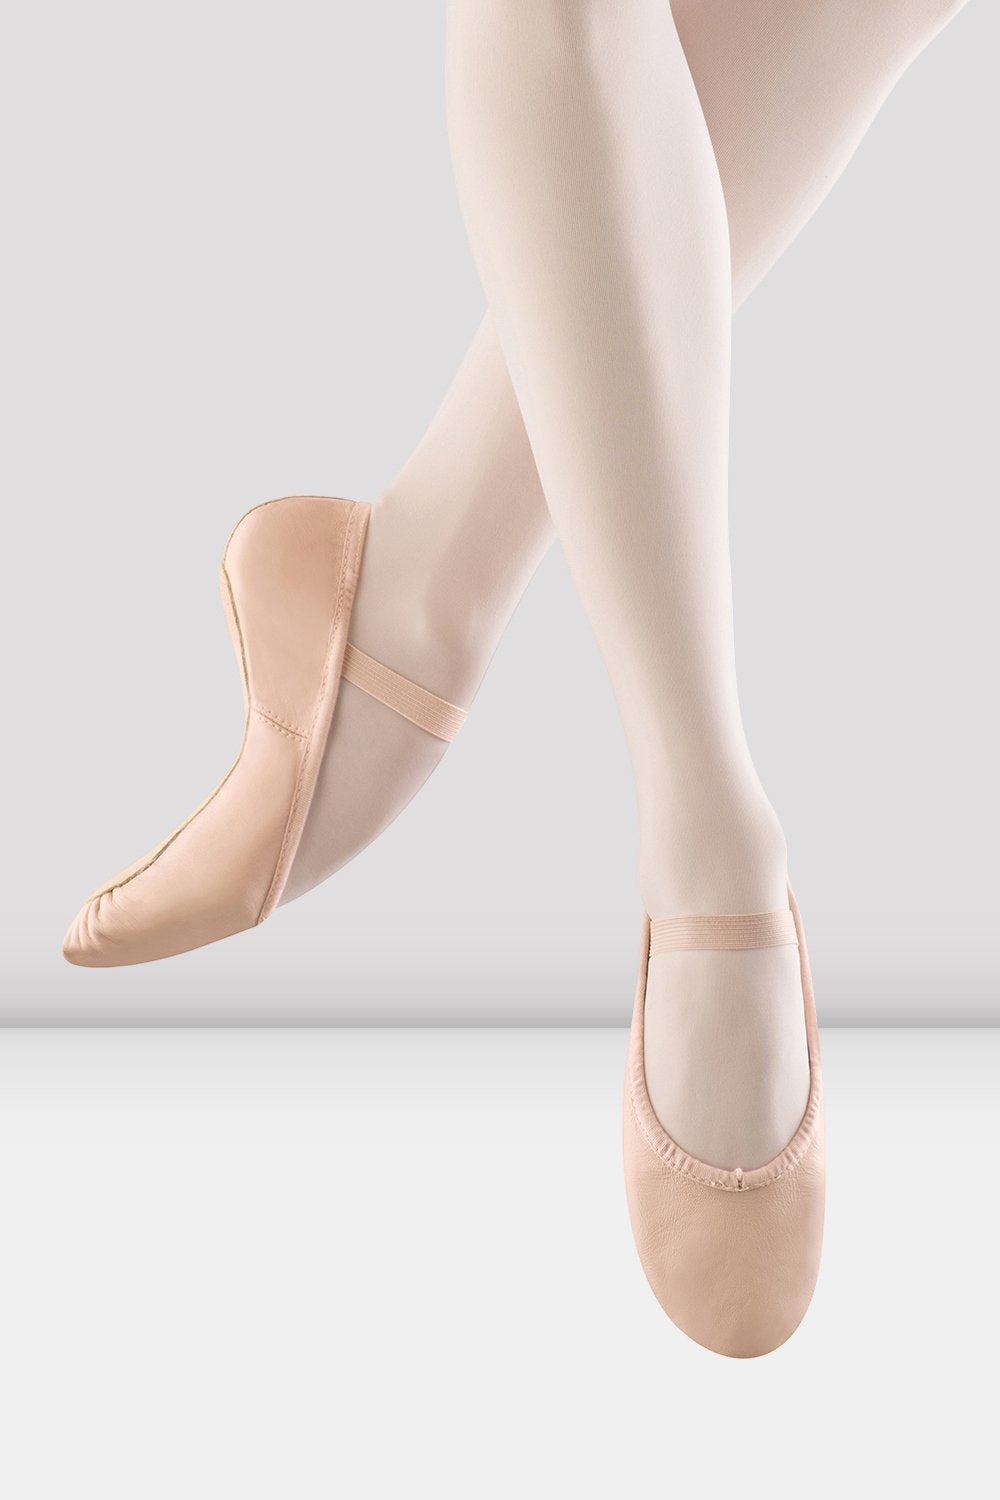 Bloch Dansoft Full Sole Leather Ballet Shoes